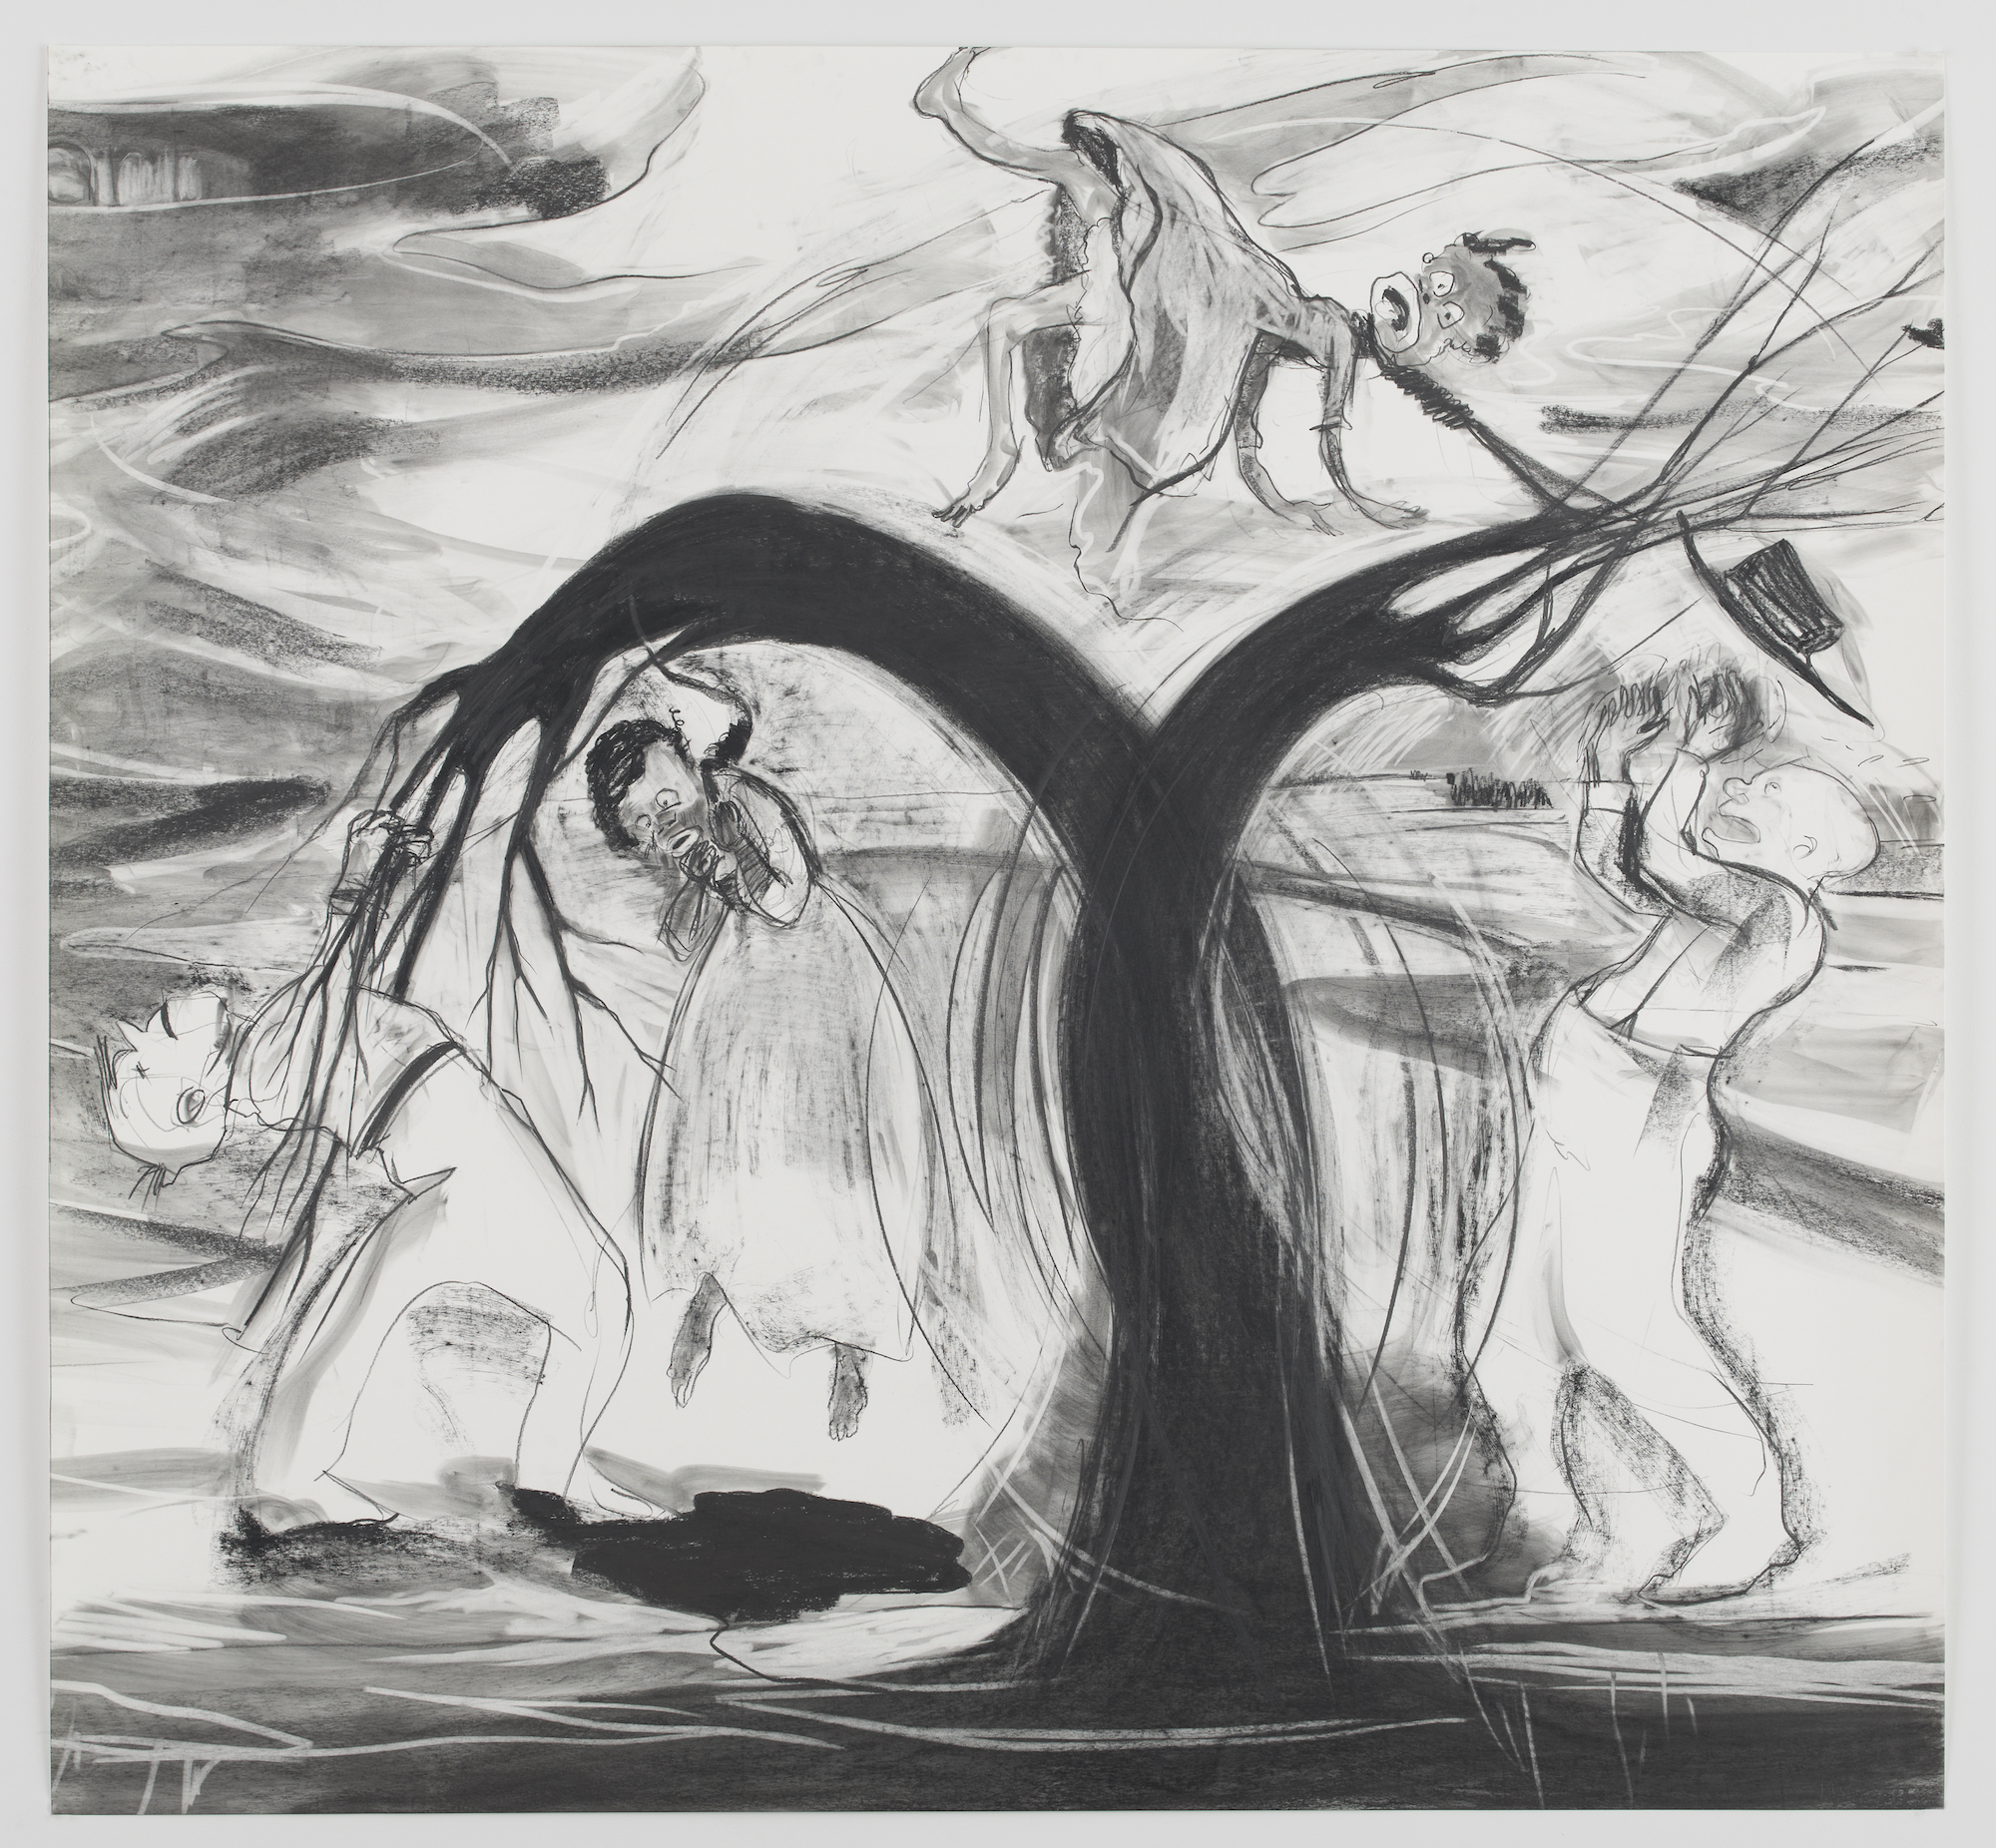 Kara Walker, The Daily Constitution 1878 , 2011. Graphite and pastel on paper, 72 x 77.75 inches.